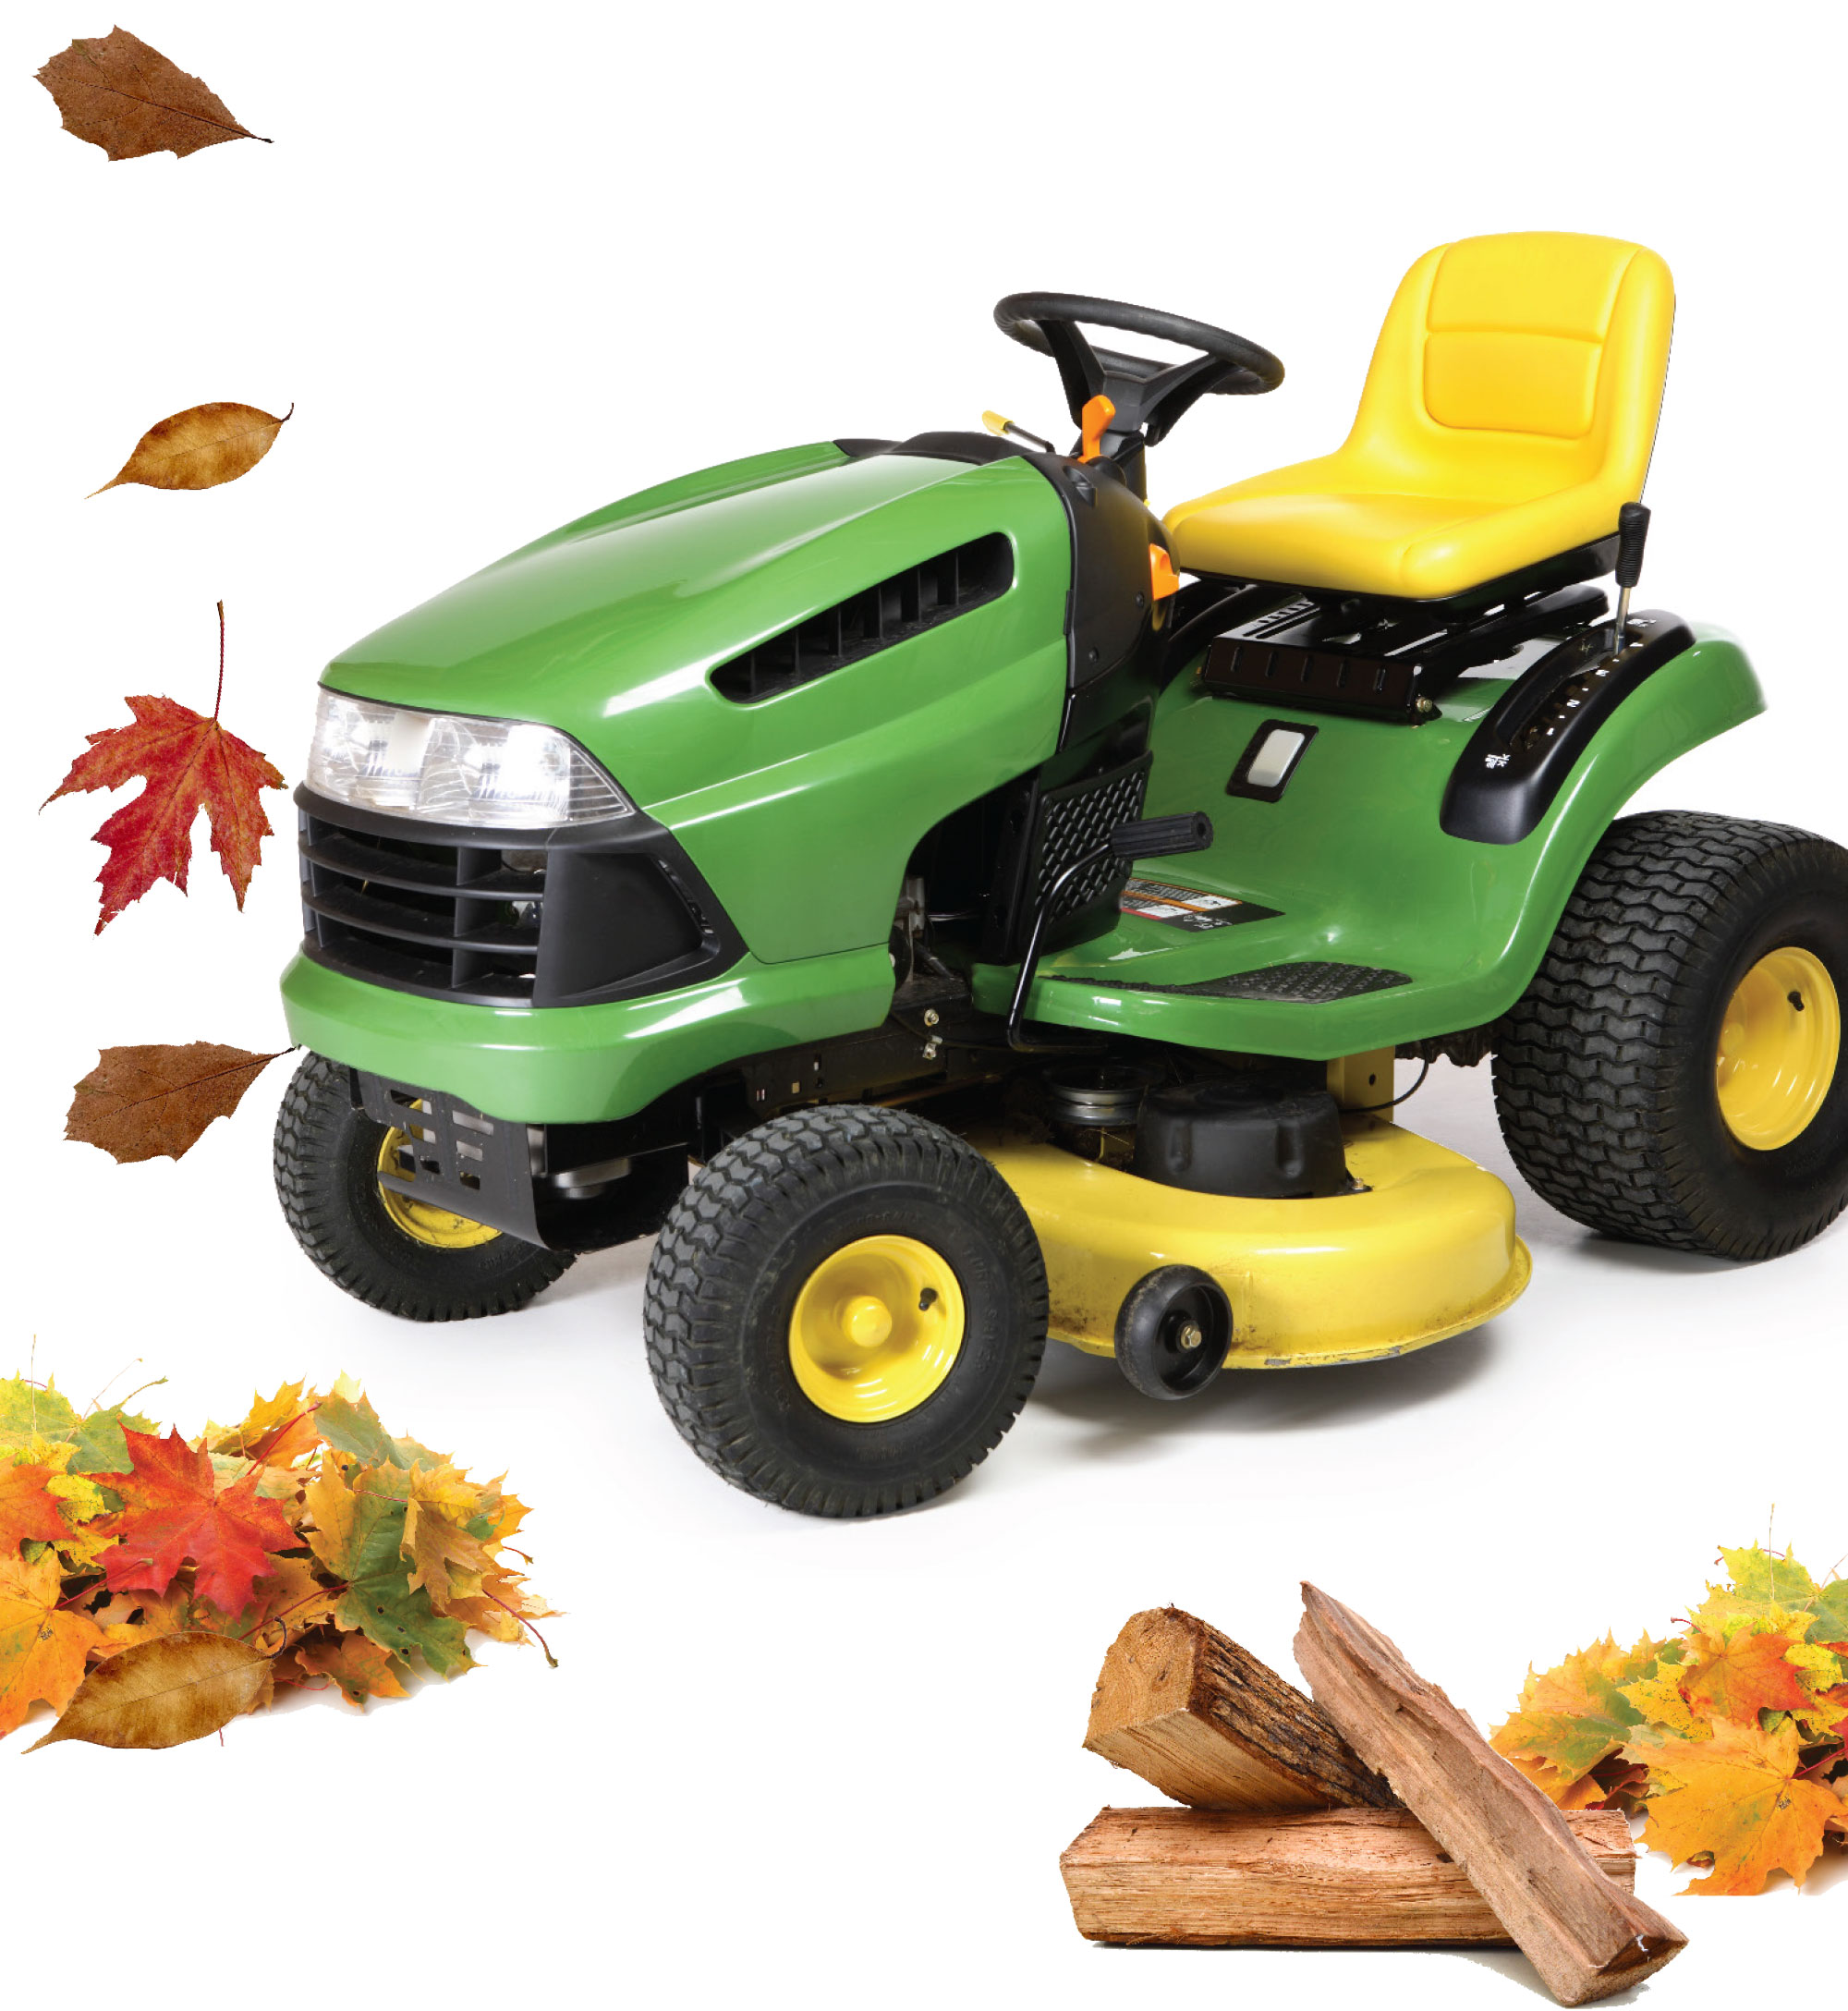 Lawnmower with leaves and firewood showing three steps to prevent pests from getting into your house.